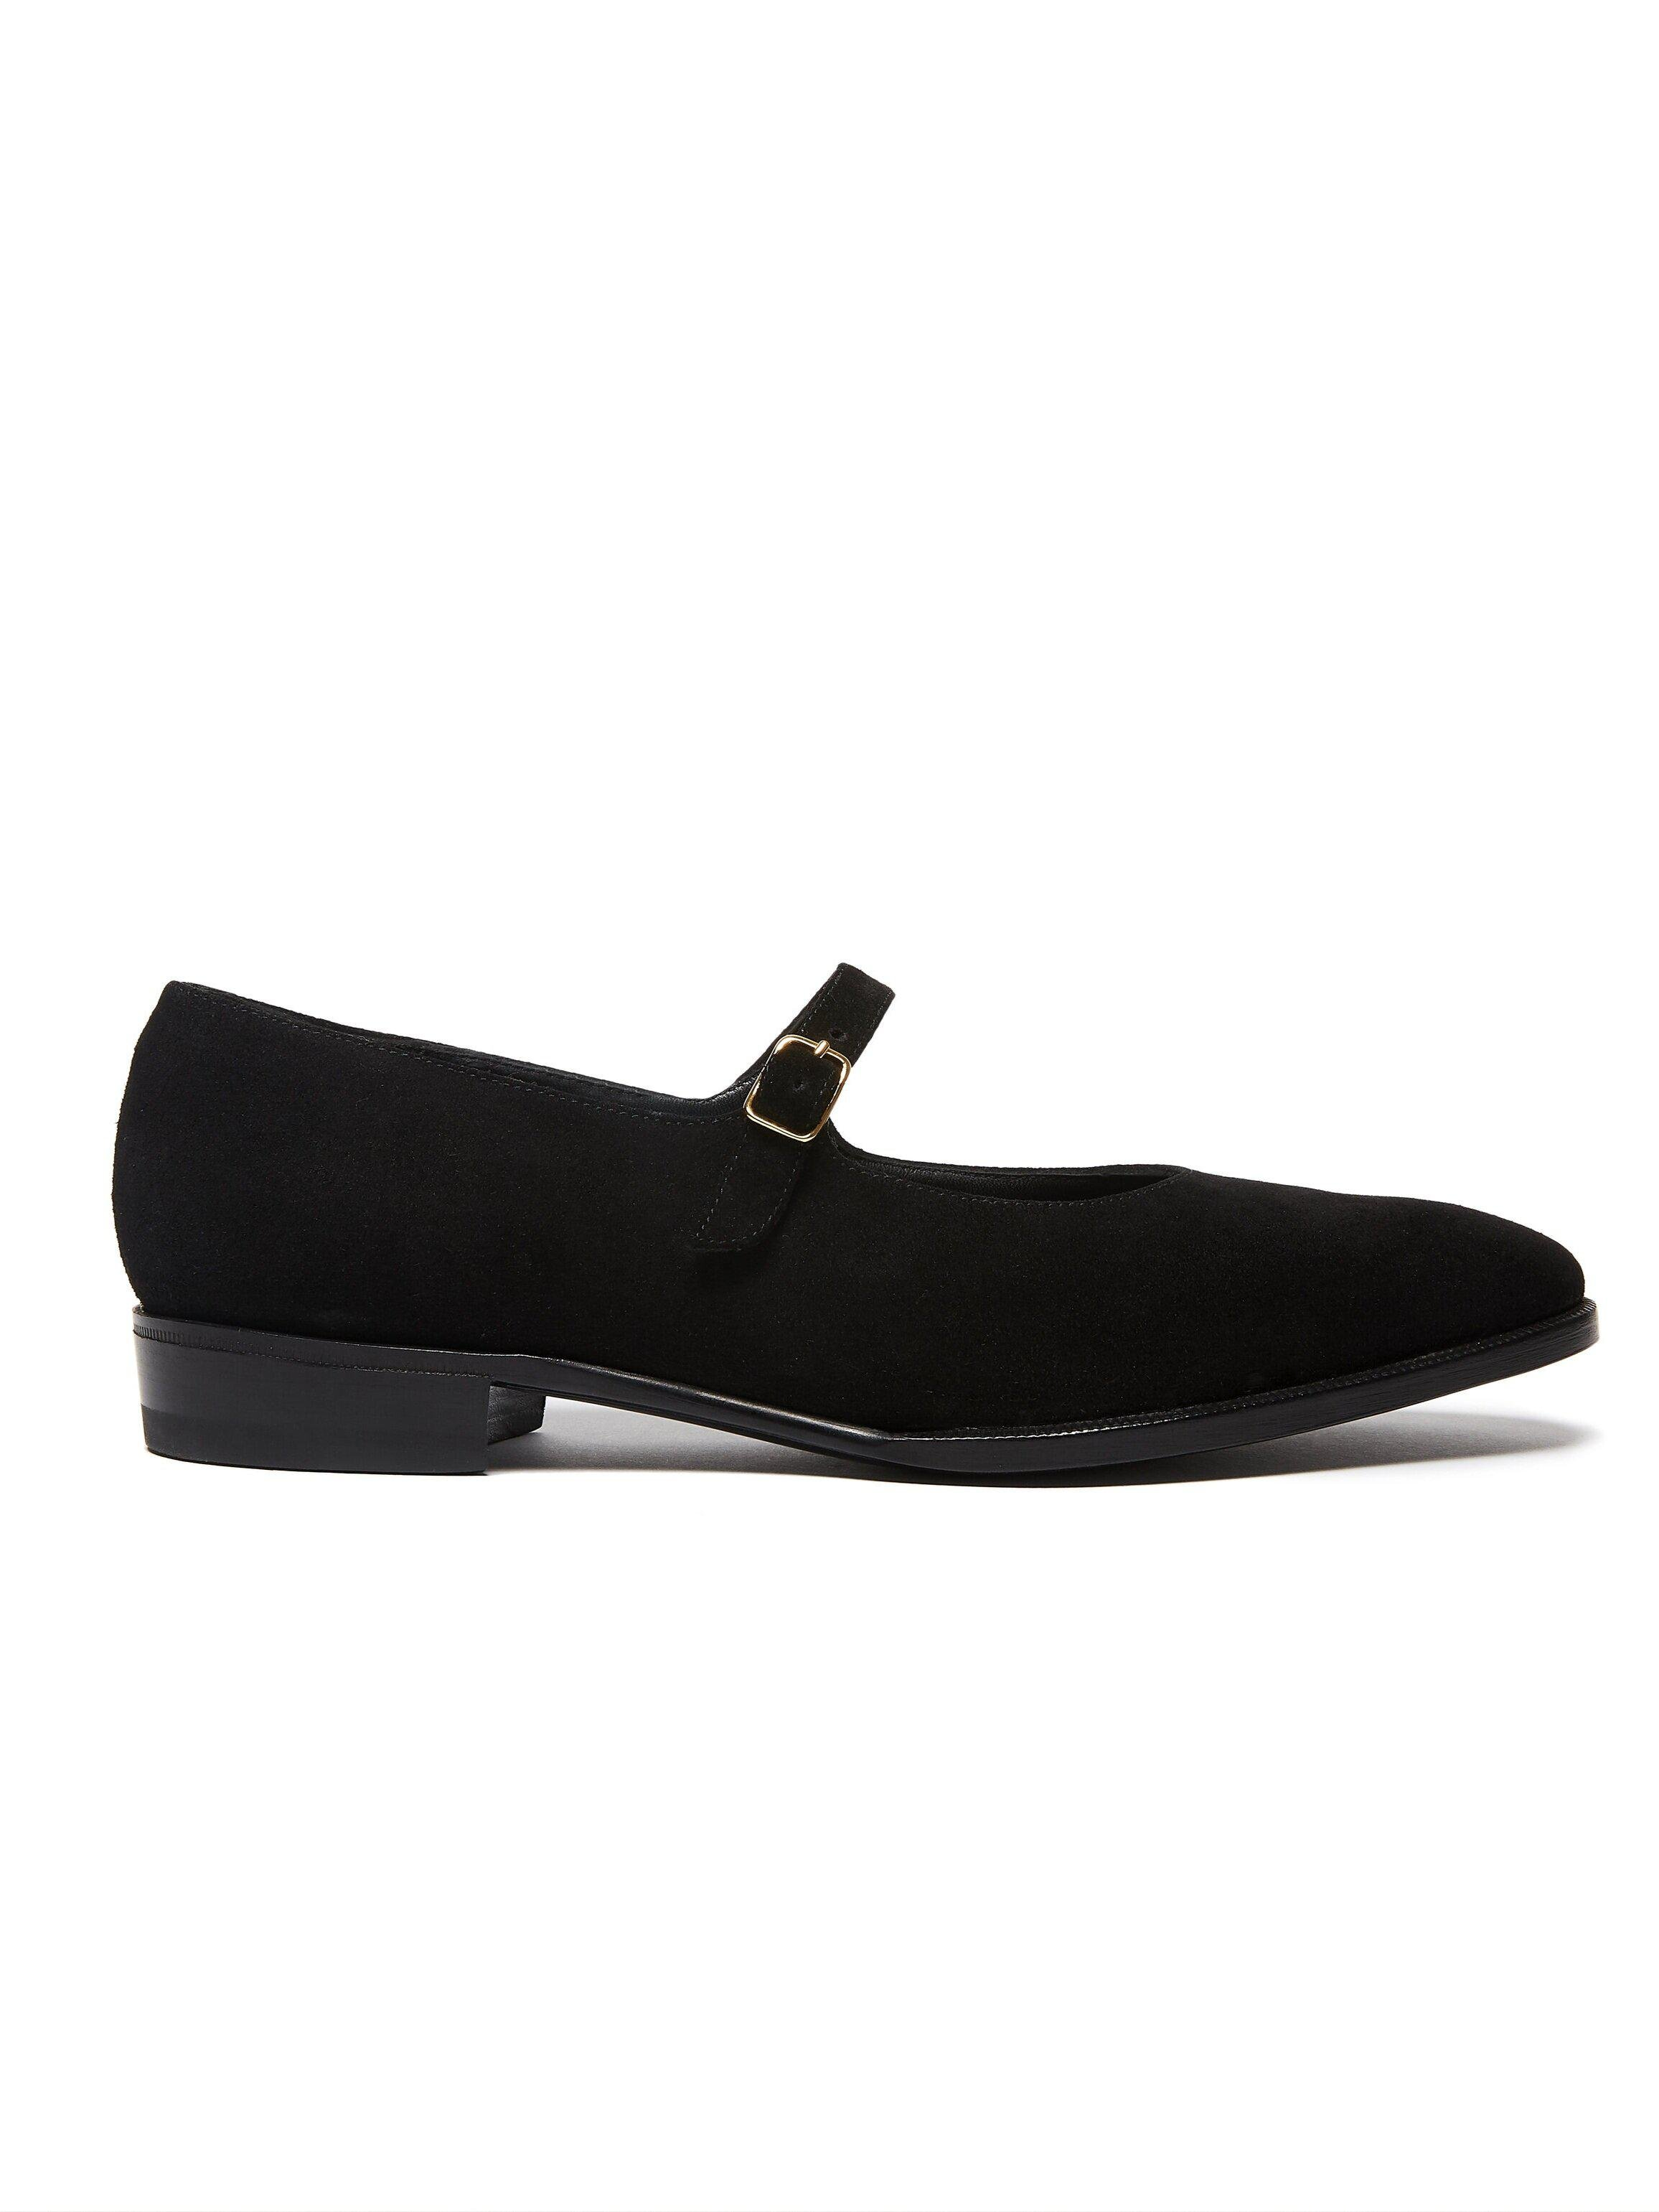 ODPEssentials Classic Mary Jane - Black Suede 1